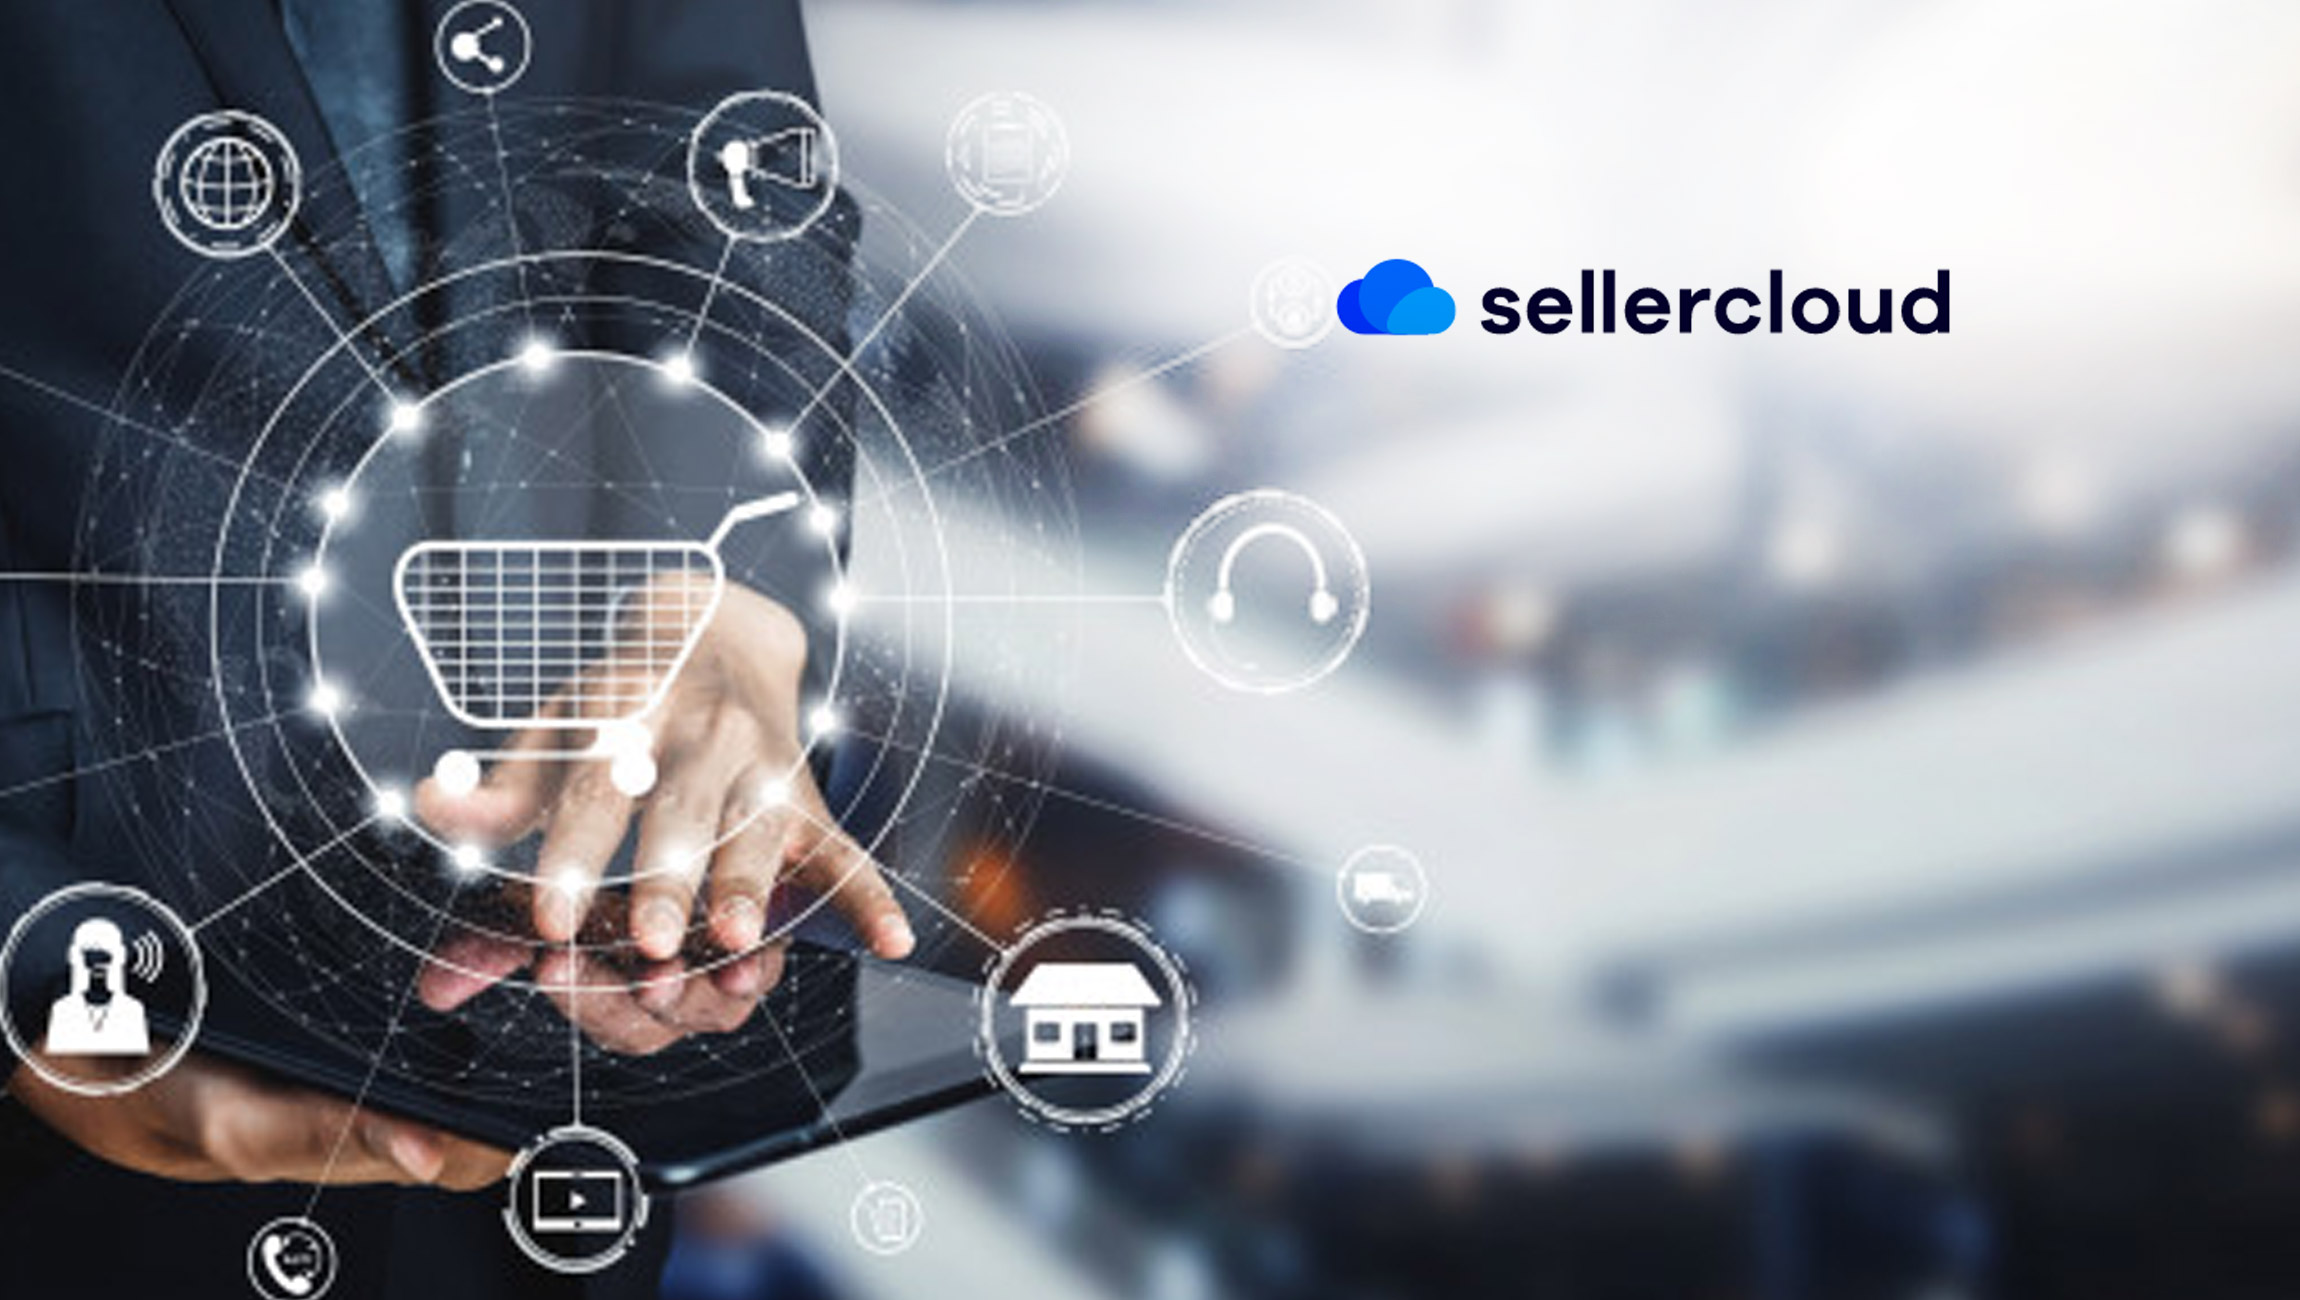 Sellercloud Releases Memaila To Simplify Customer Communication For E-Commerce Businesses